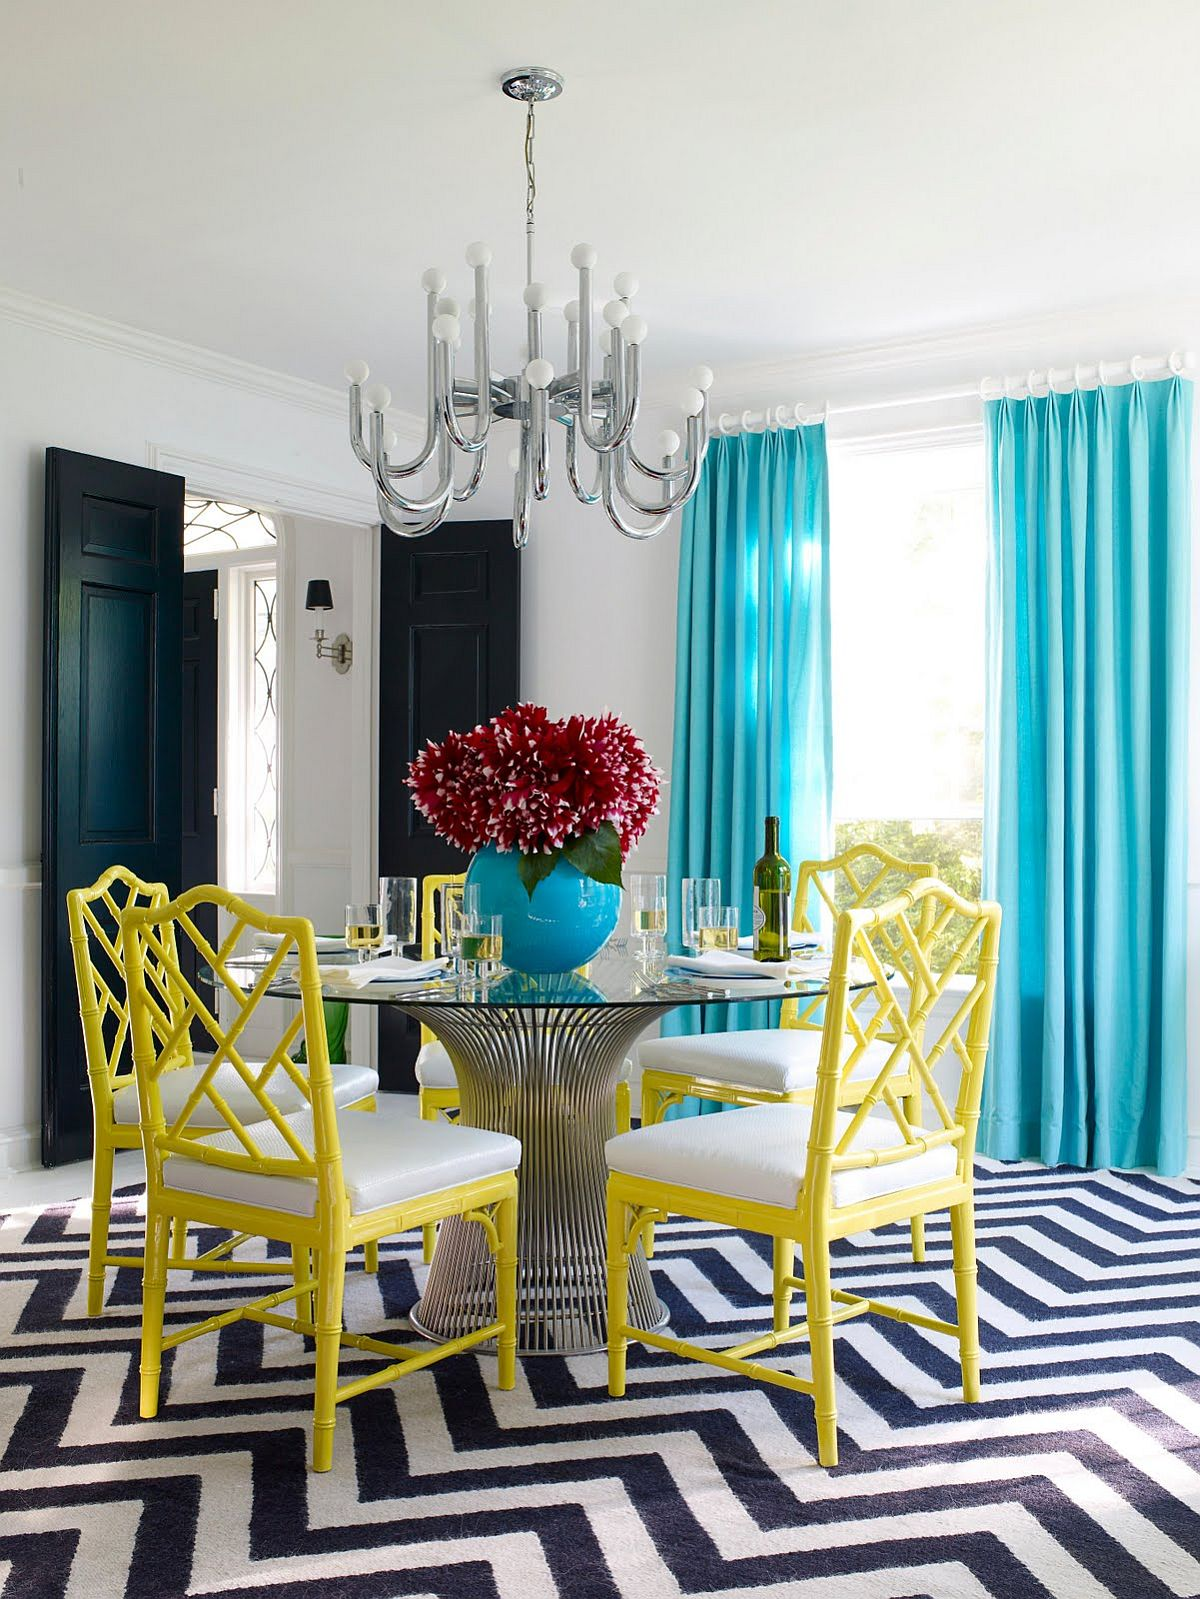 corner dining area gray chairs pineapple monocromatic unique stainless stell chandelier big blue flower vase black door exquisite room with light drapes yellow and snazzy chevron